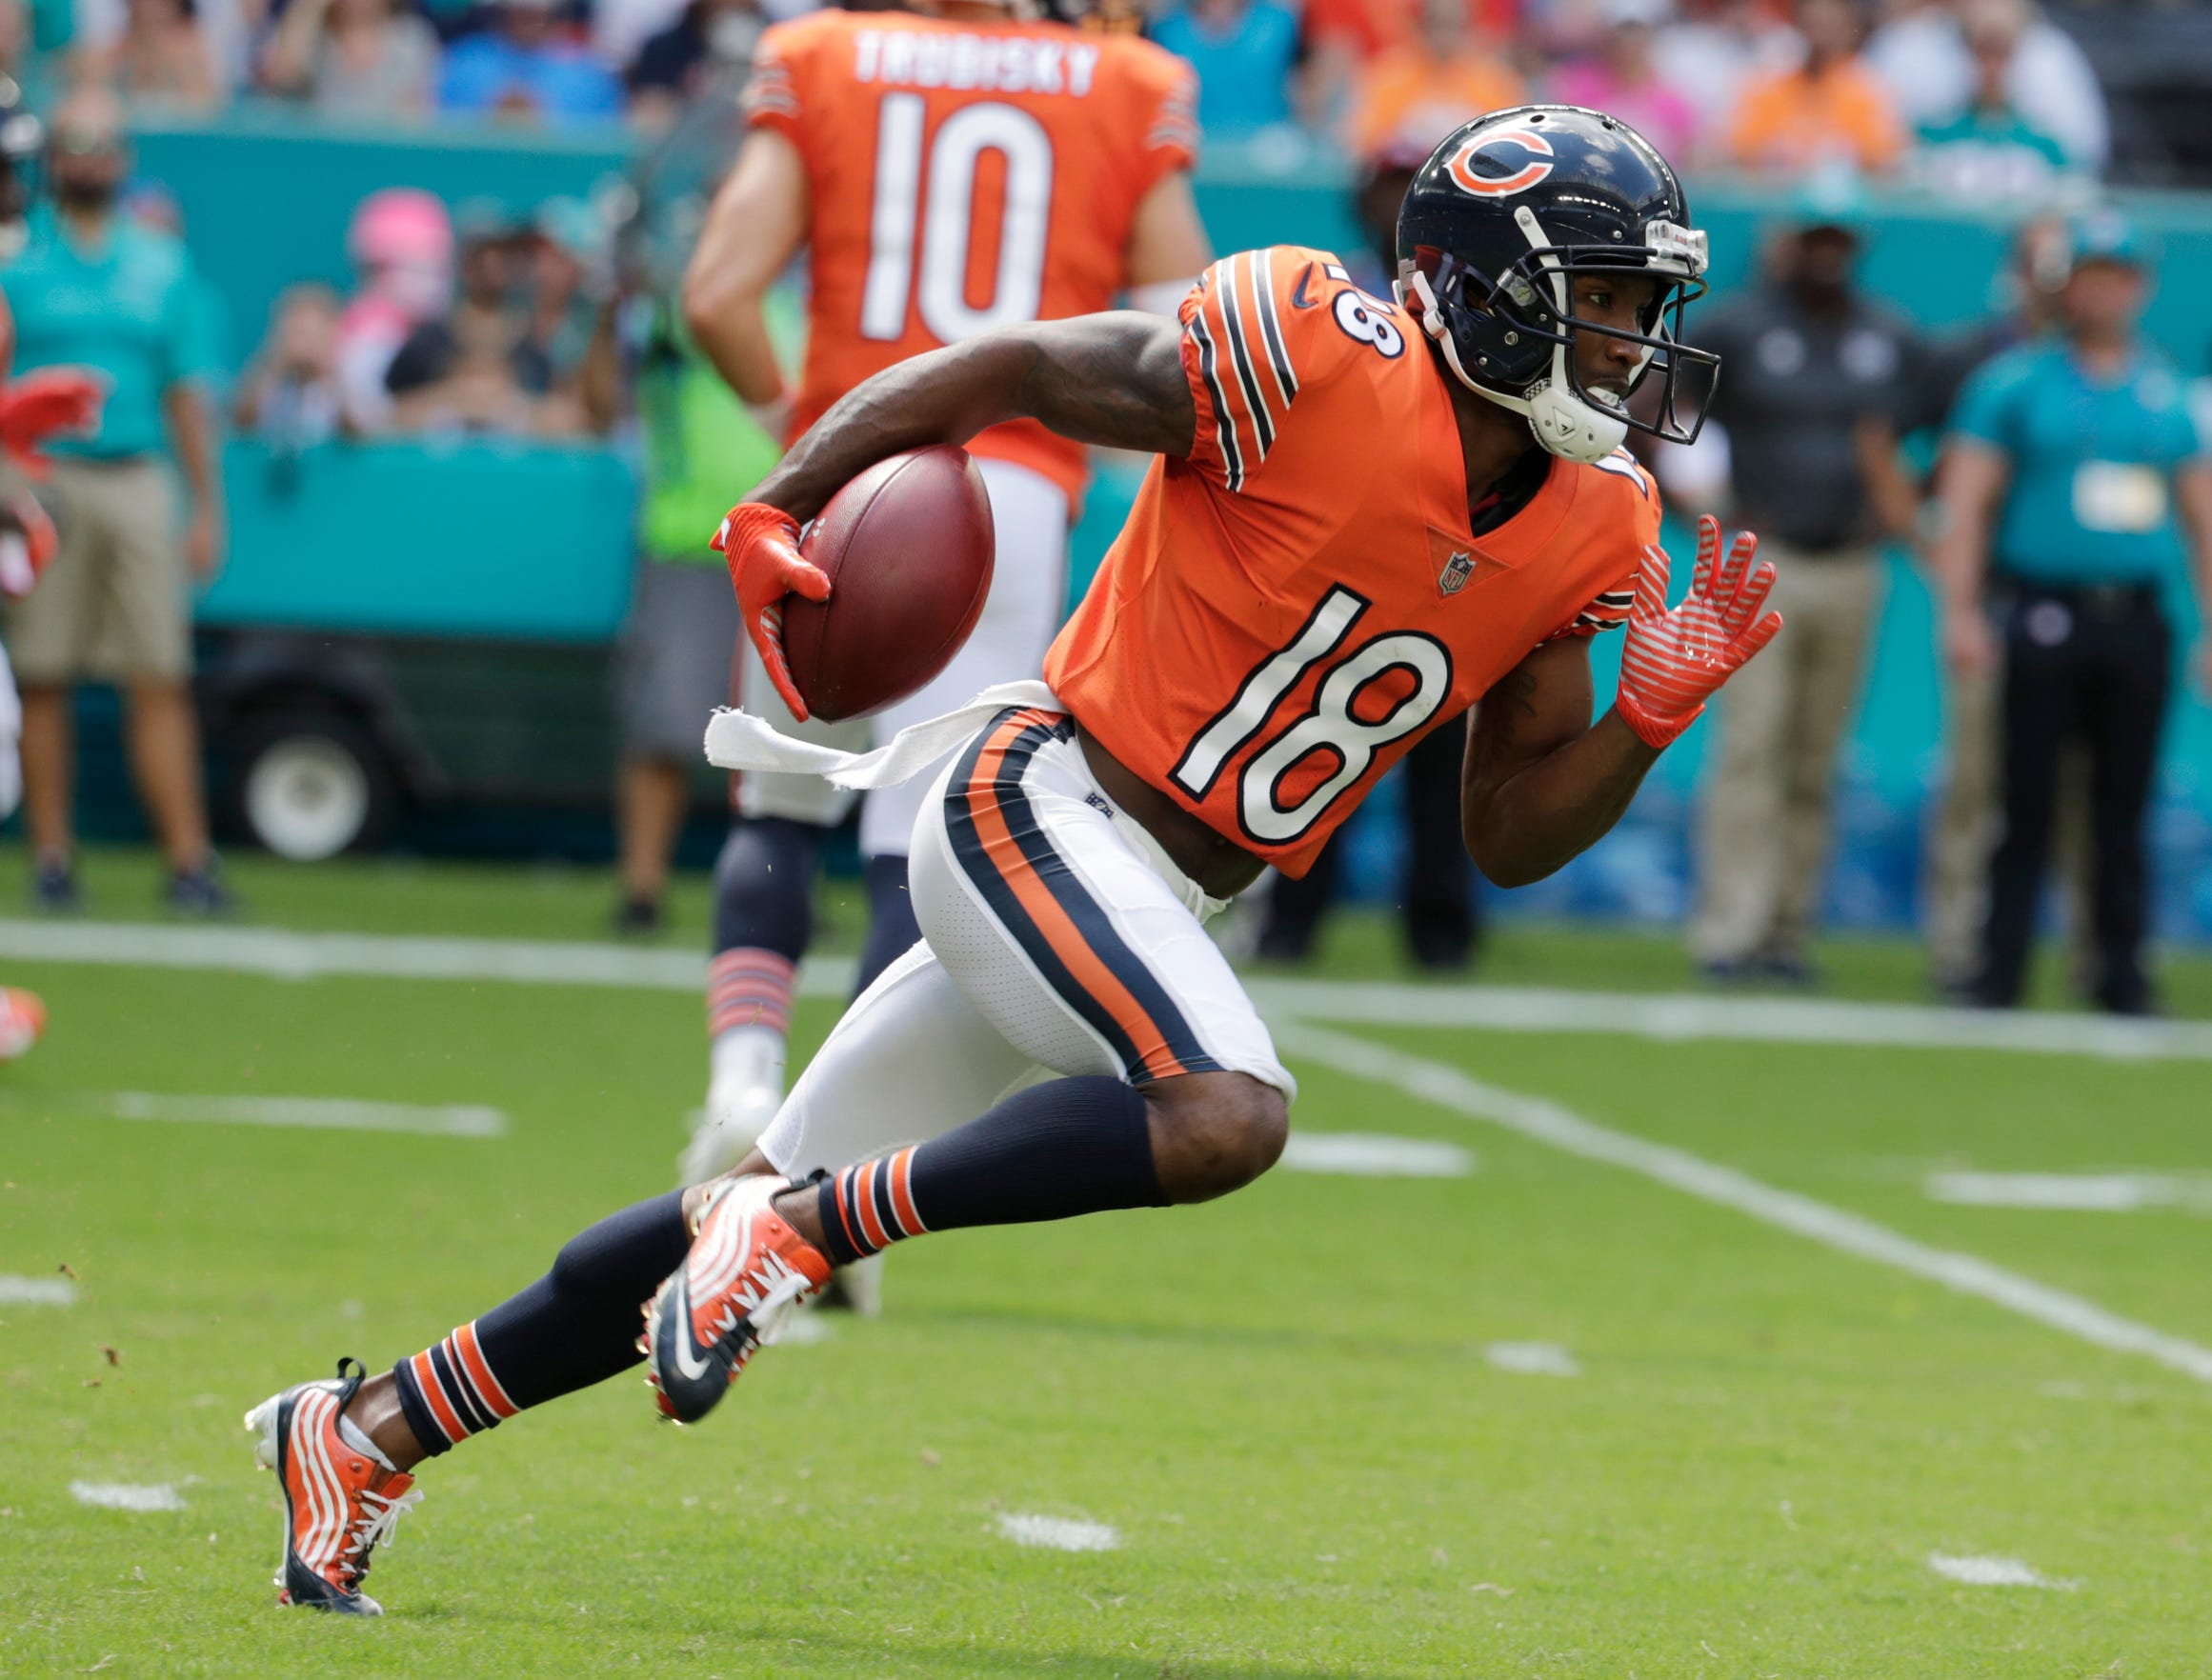 Chicago Bears wide receiver Taylor Gabriel (18) carries the ball during the first half against the Miami Dolphins, Sunday, Oct. 14, 2018, in Miami Gardens, Fla.